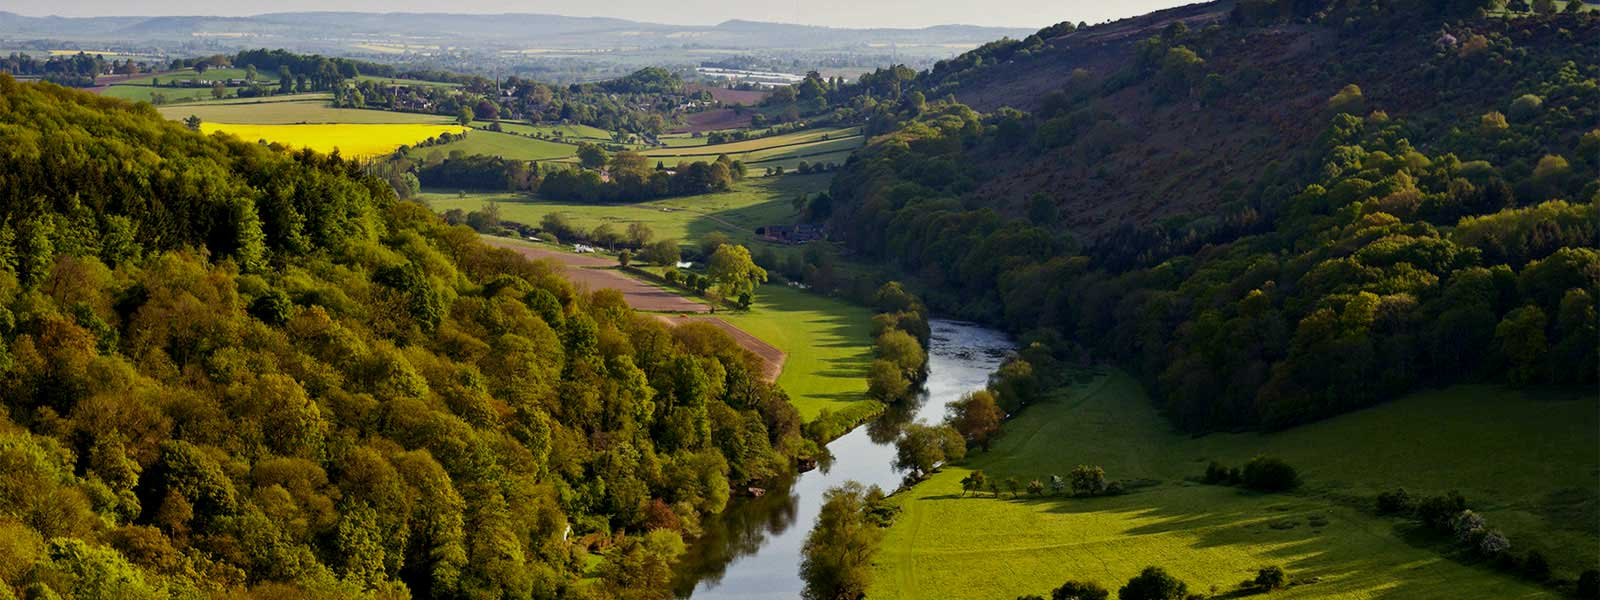 Self catering holiday cottages in the Wye Valley at Symonds Yat rock